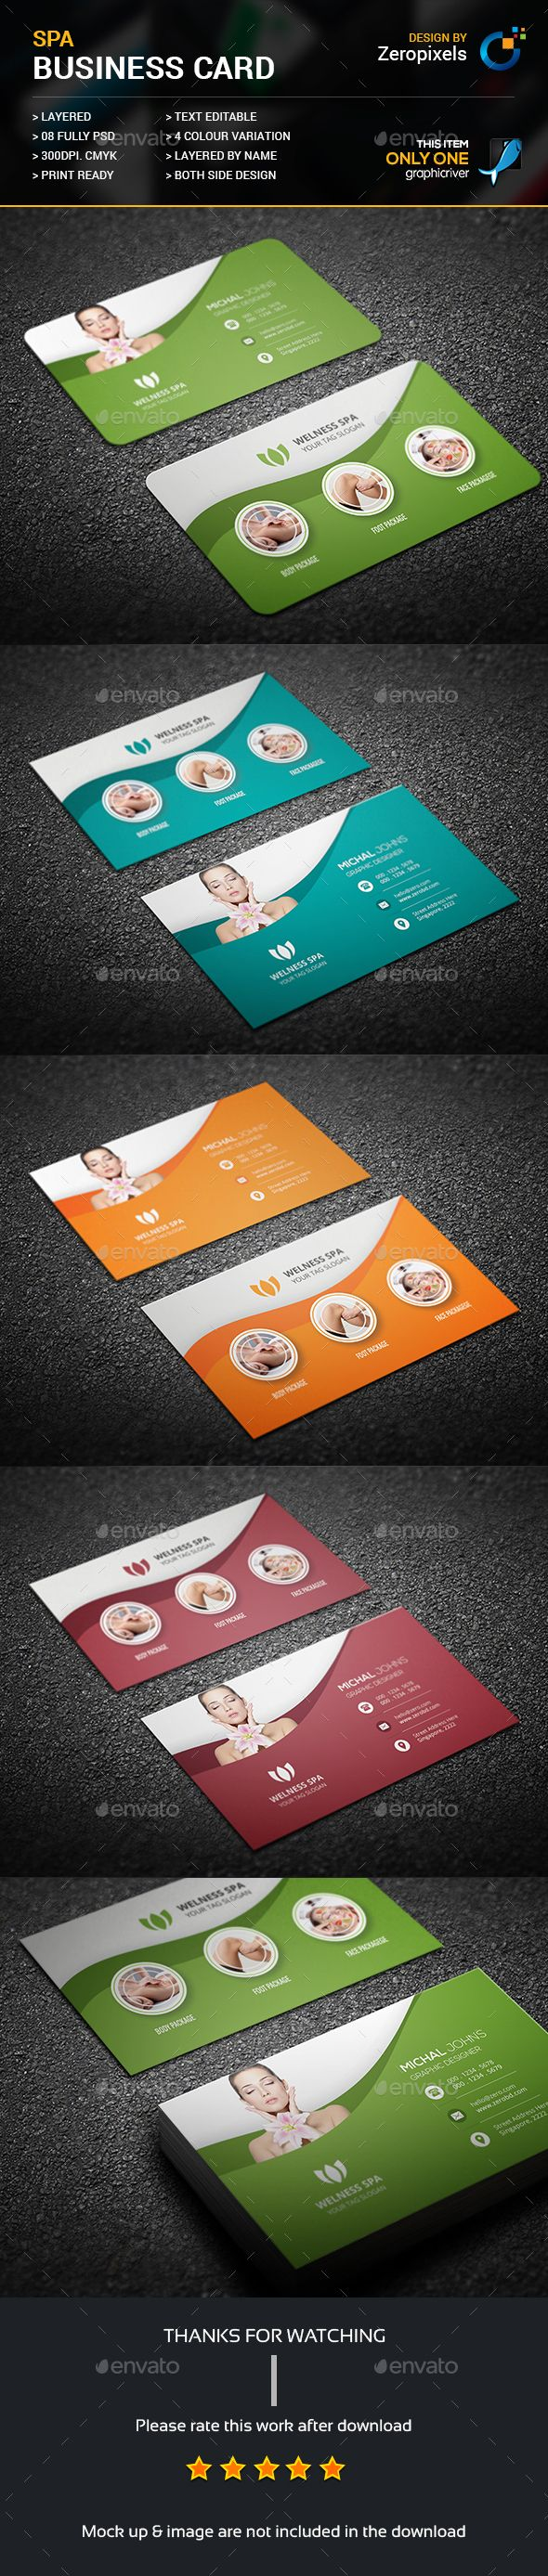 Best 25+ Spa business cards ideas on Pinterest | Beauty salon ...